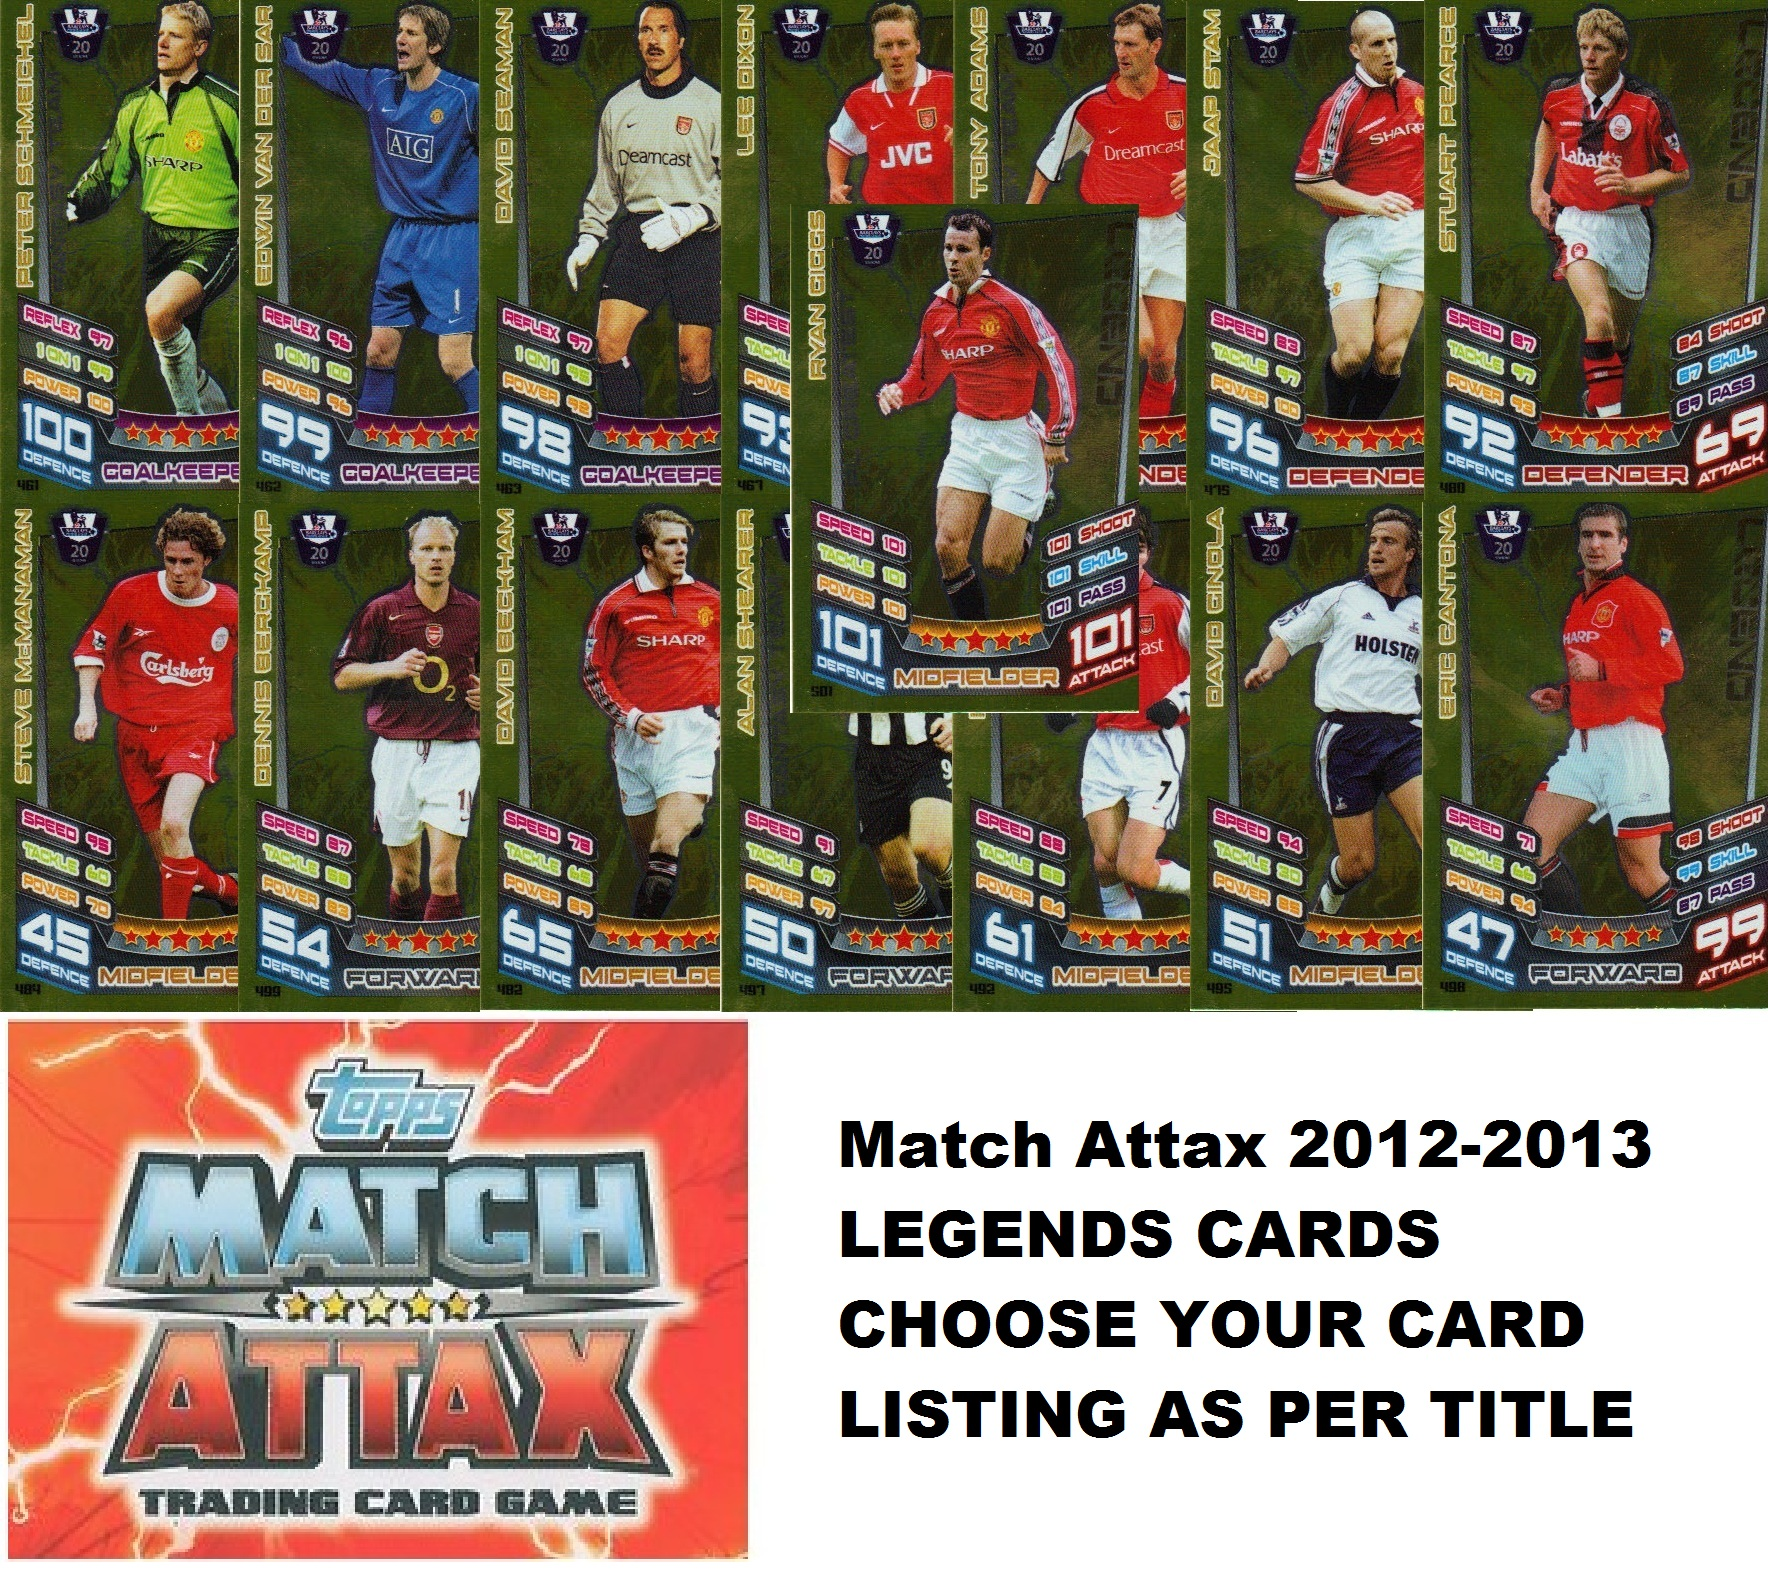 Match Attax 2012/2013 CHOOSE Legend Card 481 - 501 *FREE UK P&P* MOTM